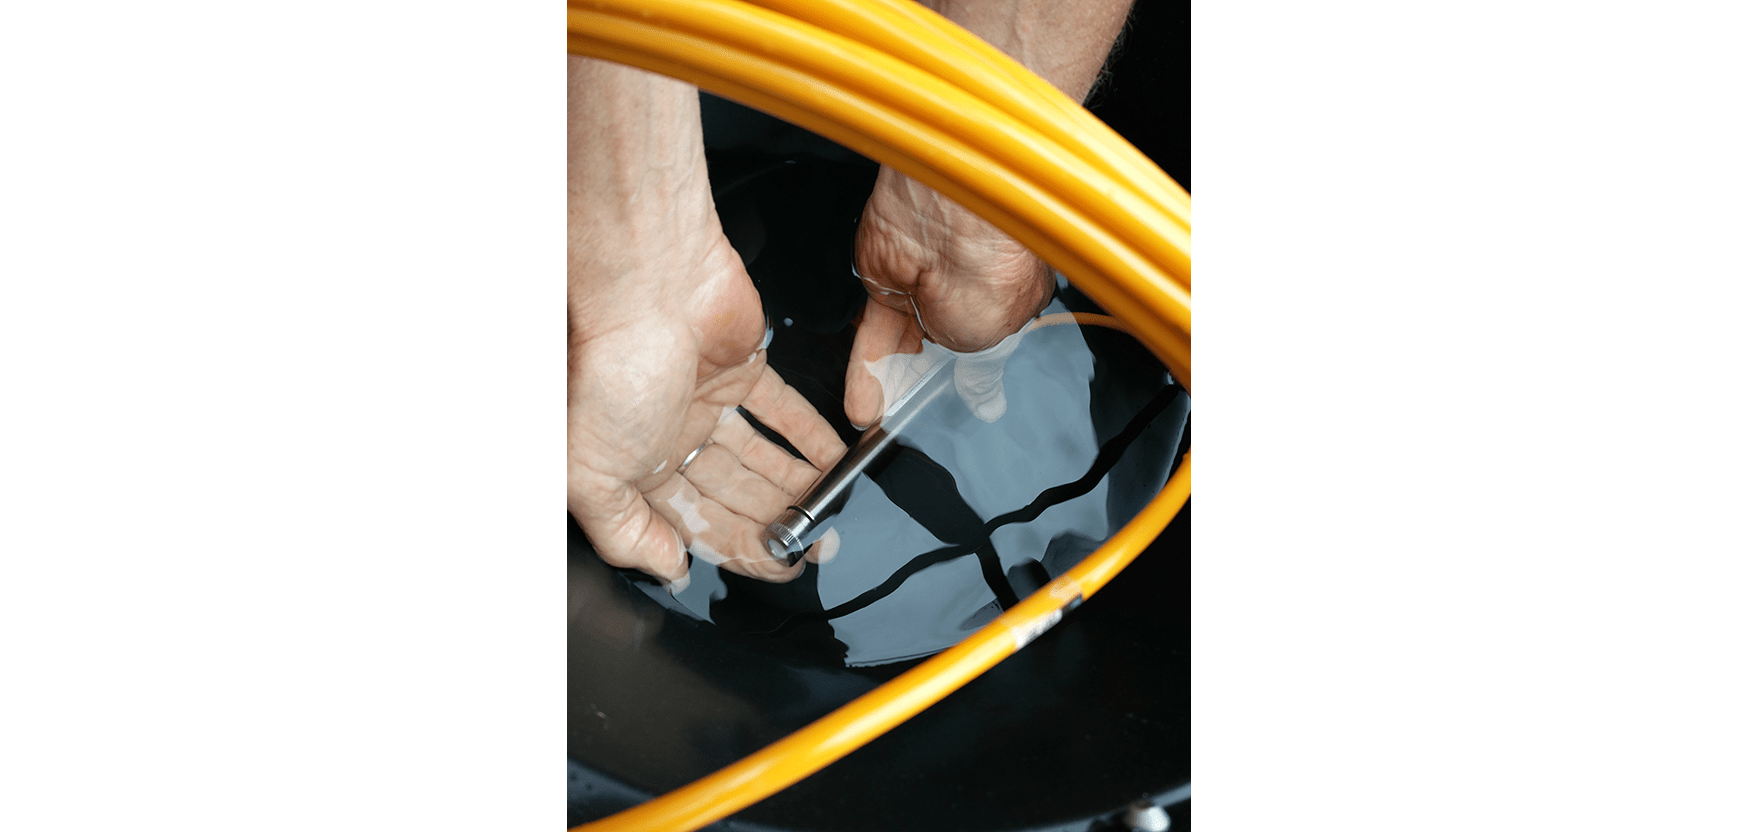 vibrating wire piezometer VWP-300 being saturated in bucket of water